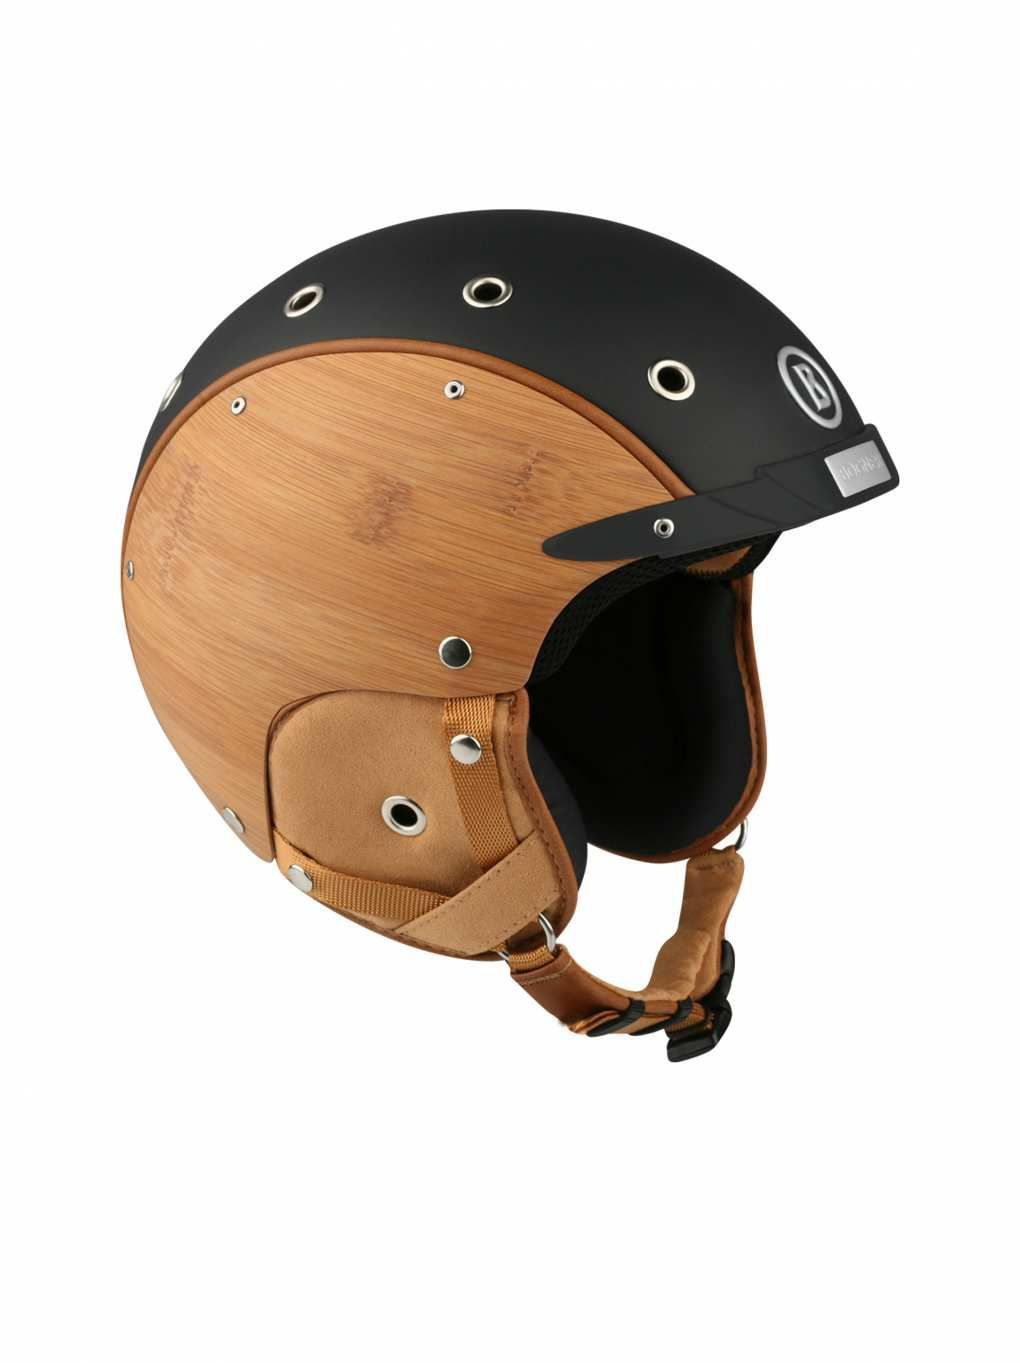 80368c7e2 SKI HELMET BAMBOO in Black for Unisex | BOGNER USA | Ski Fashion ...